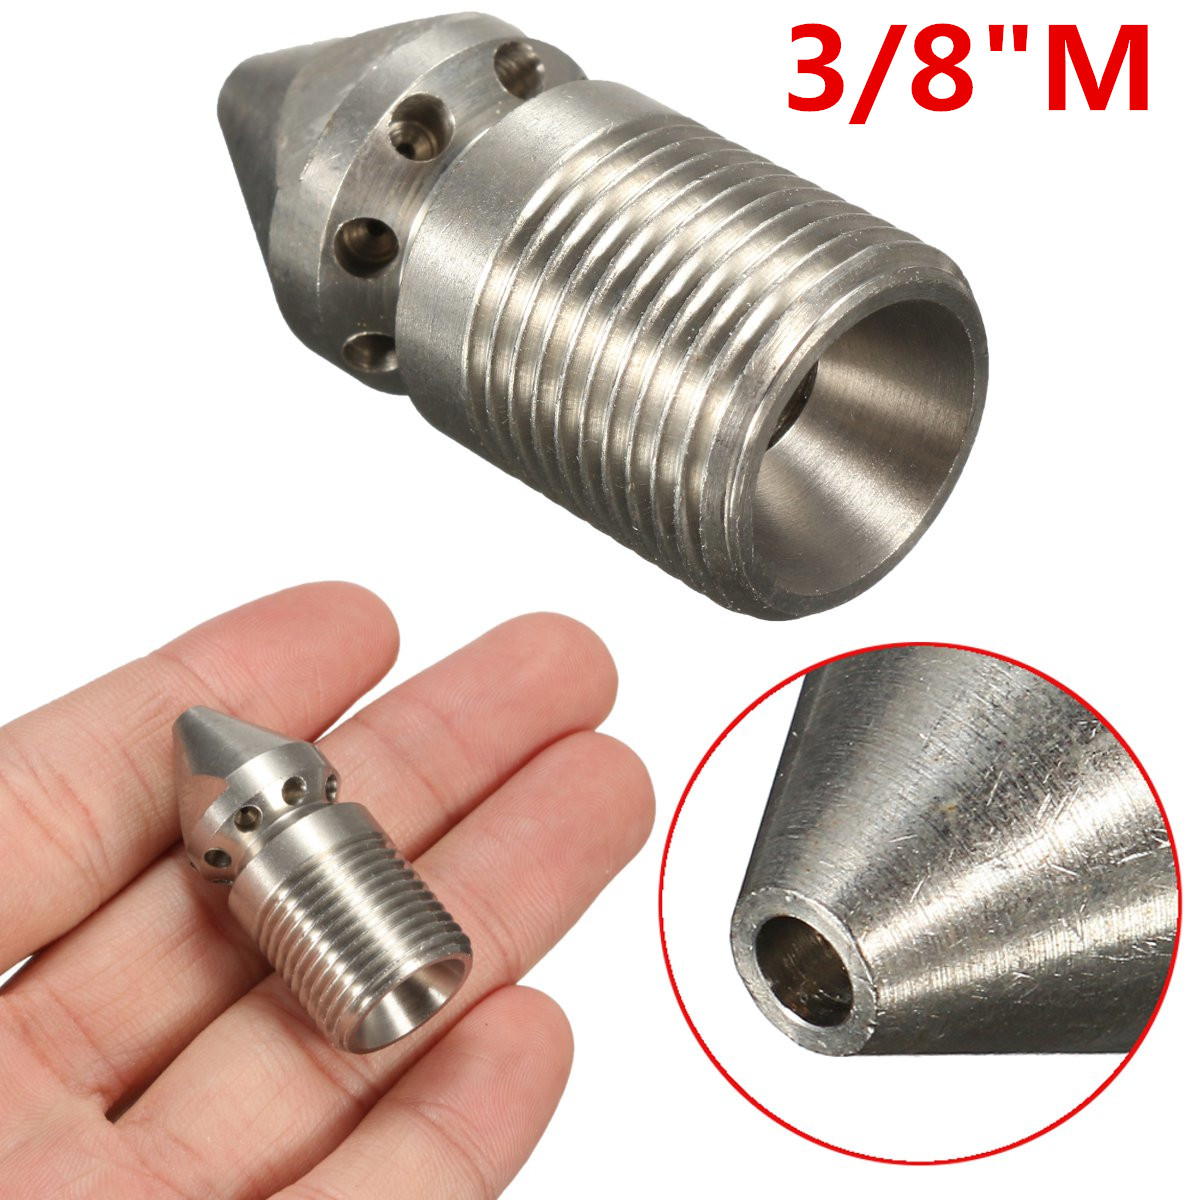 Pressure Washer Drain / Sewer Cleaning Jetter Nozzle 9 Jet 3/8